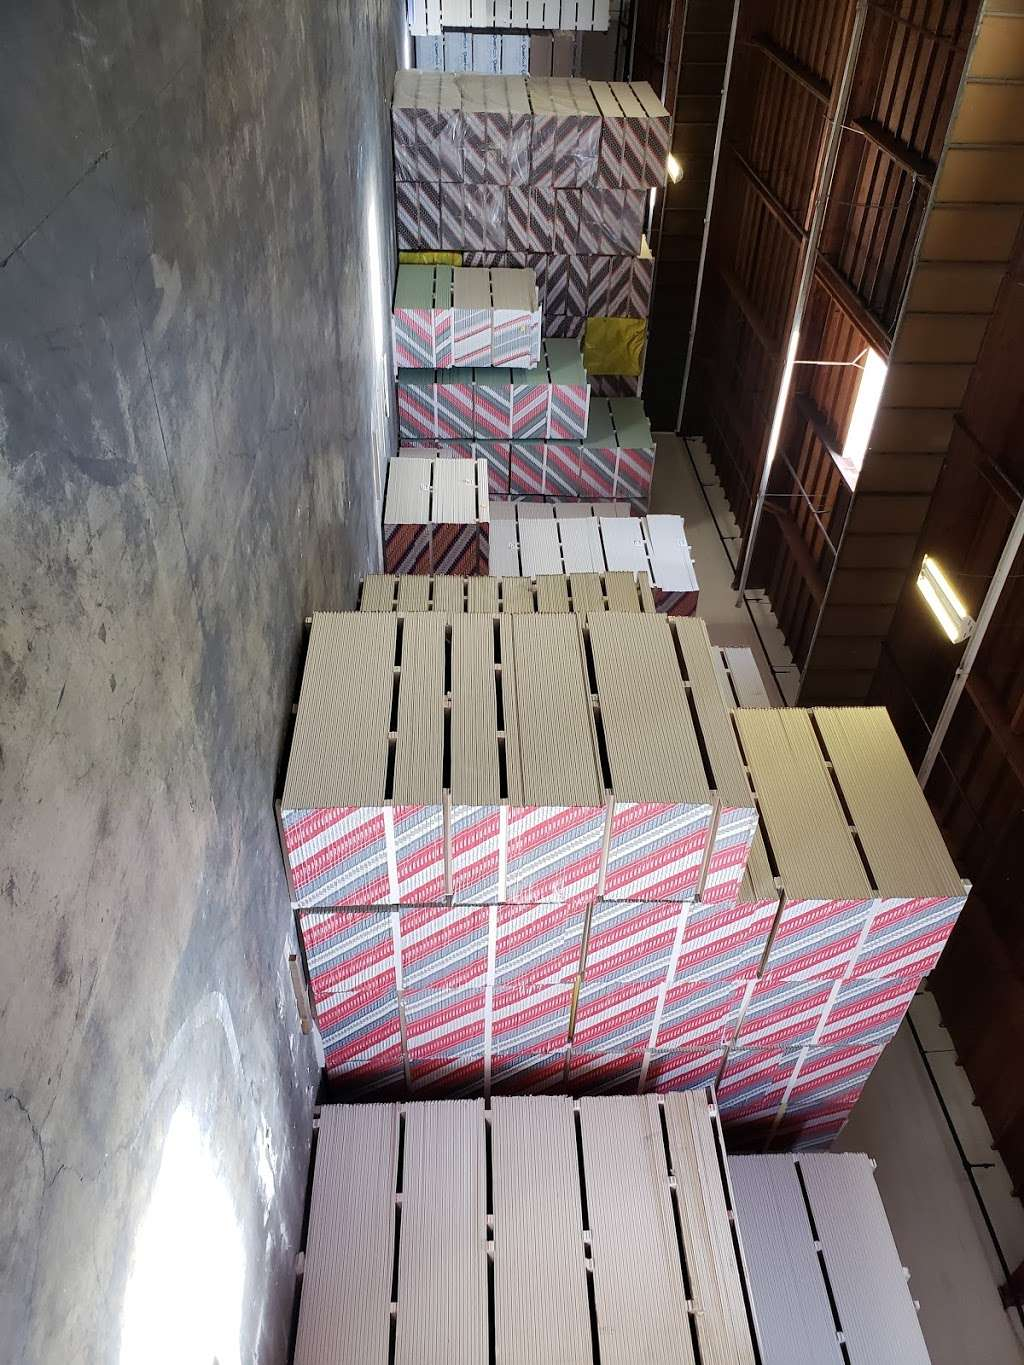 Foundation Building Materials - store  | Photo 6 of 10 | Address: A, 3343 Arden Rd, Hayward, CA 94545, USA | Phone: (510) 259-9404